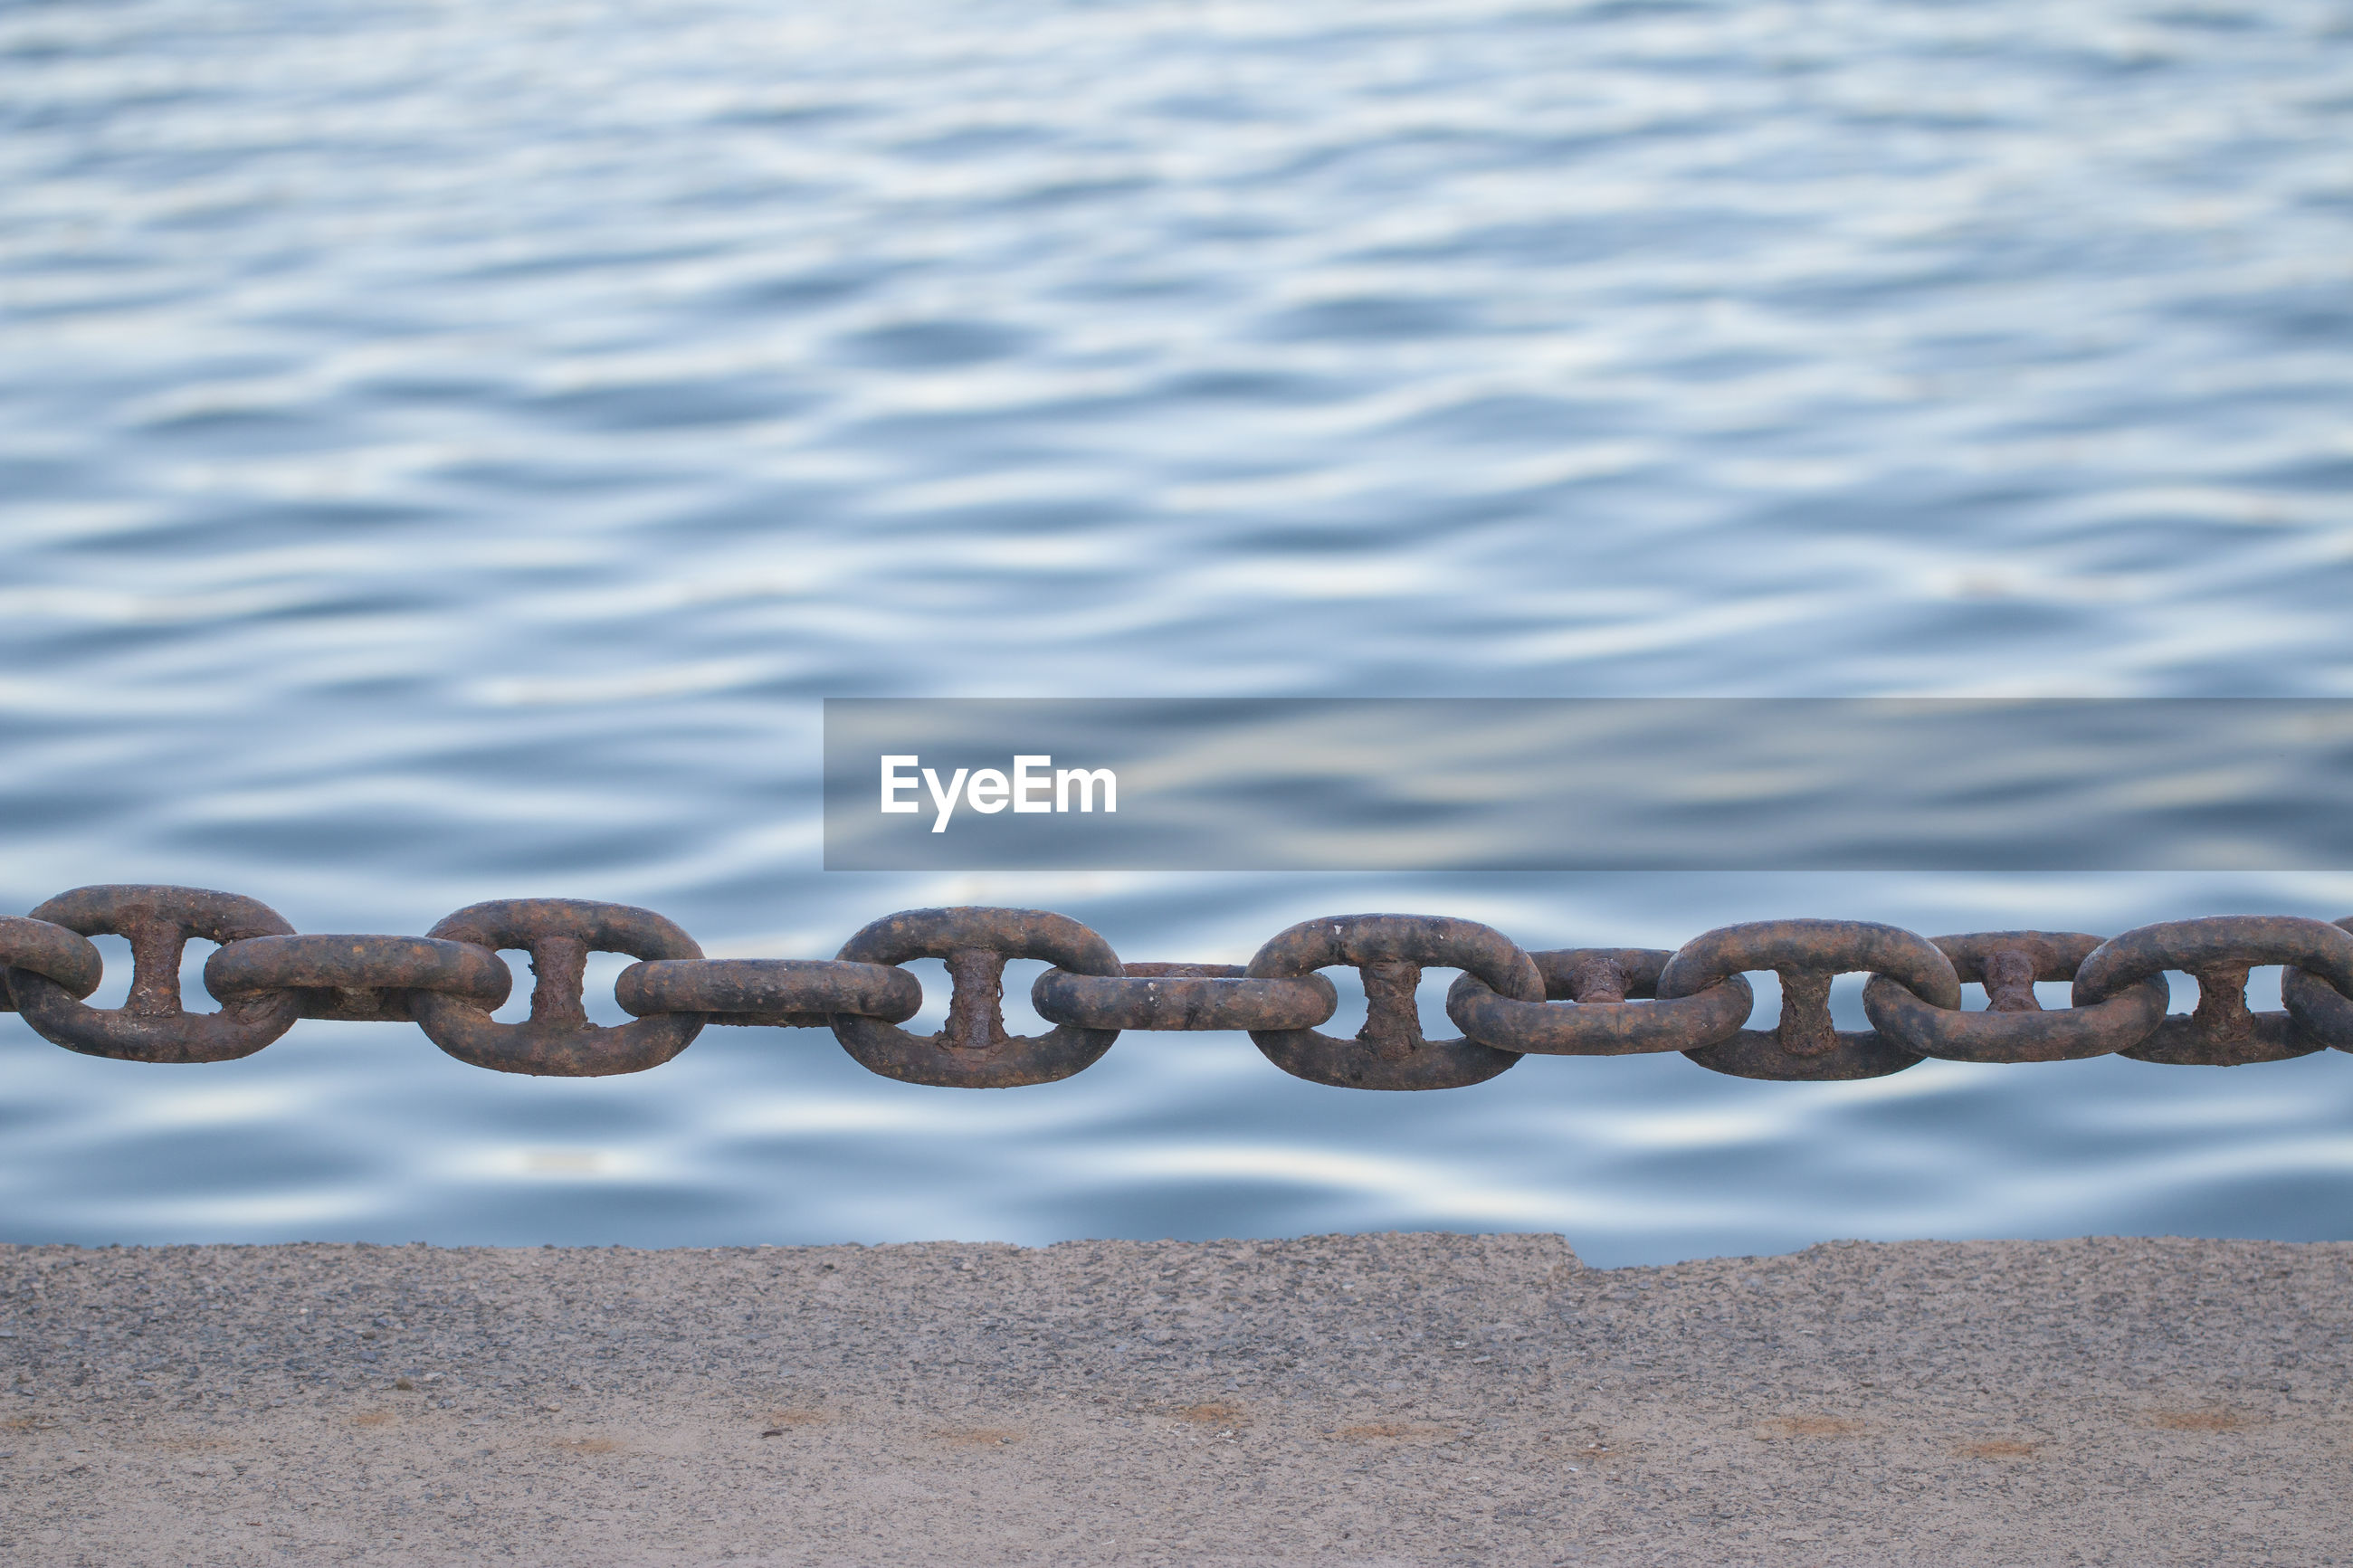 Close-up of rusty chain against river